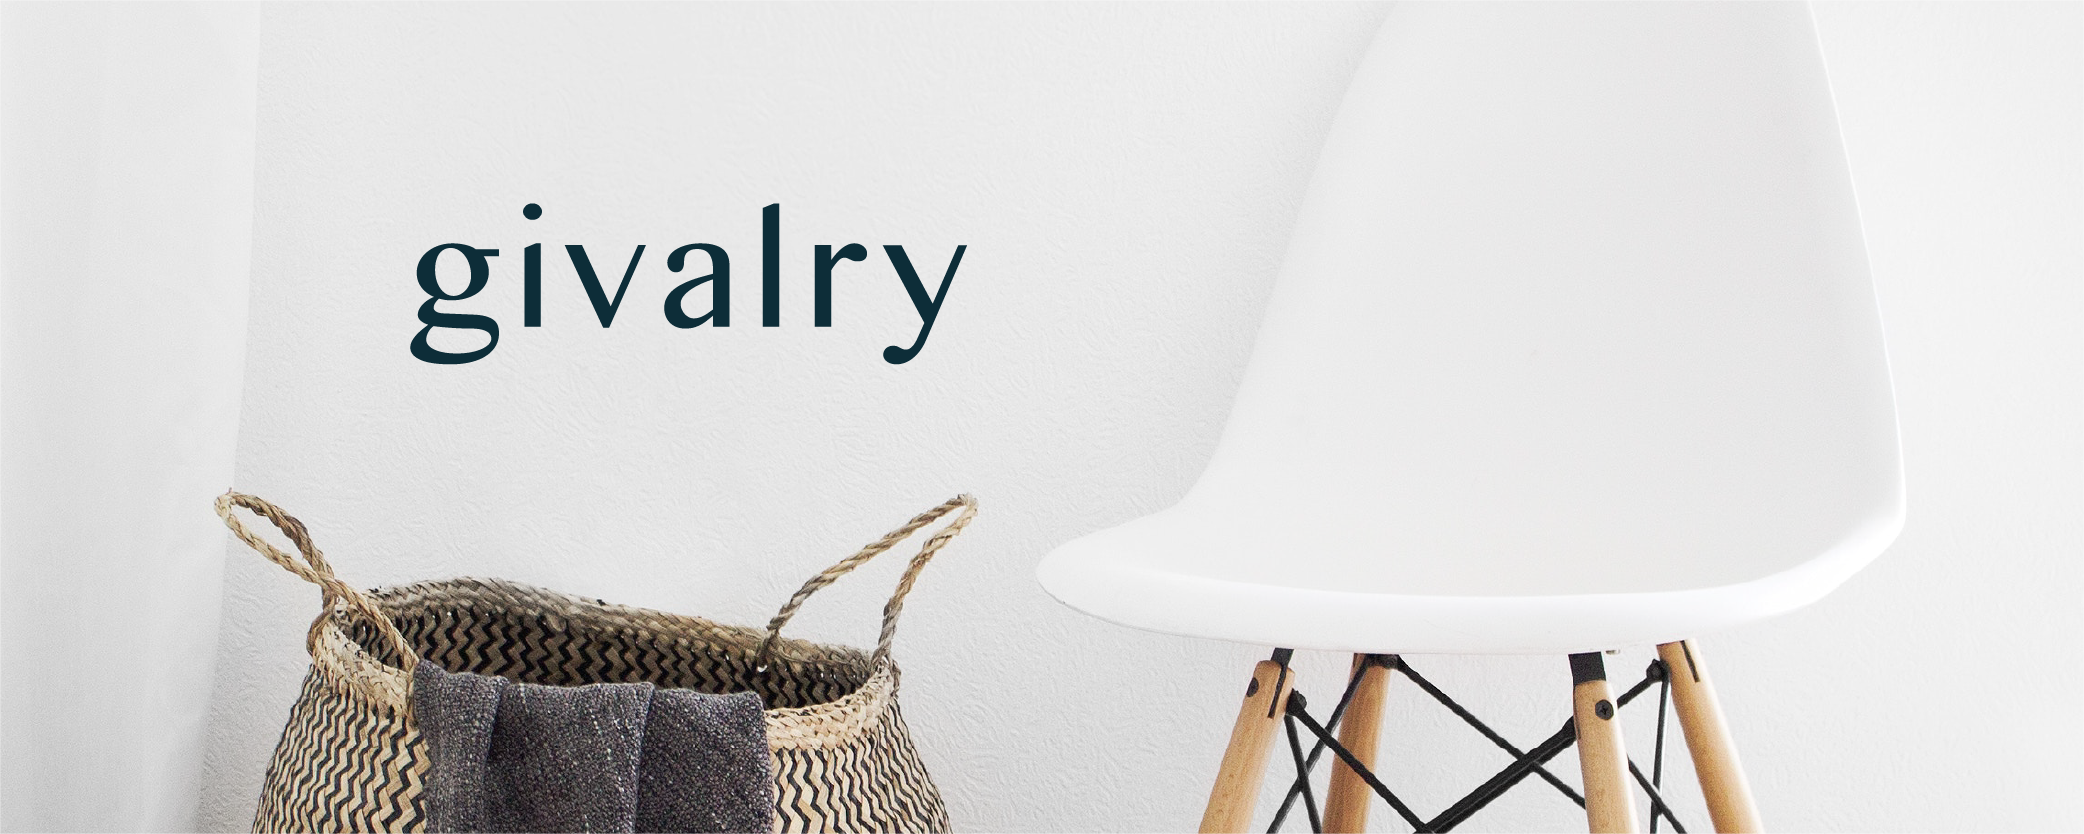 Givalry logo situated on top of an image of a brown wicker laundry basket with a dark purple blanket sitting on the edge, next to a white backed chair with light wooden legs.